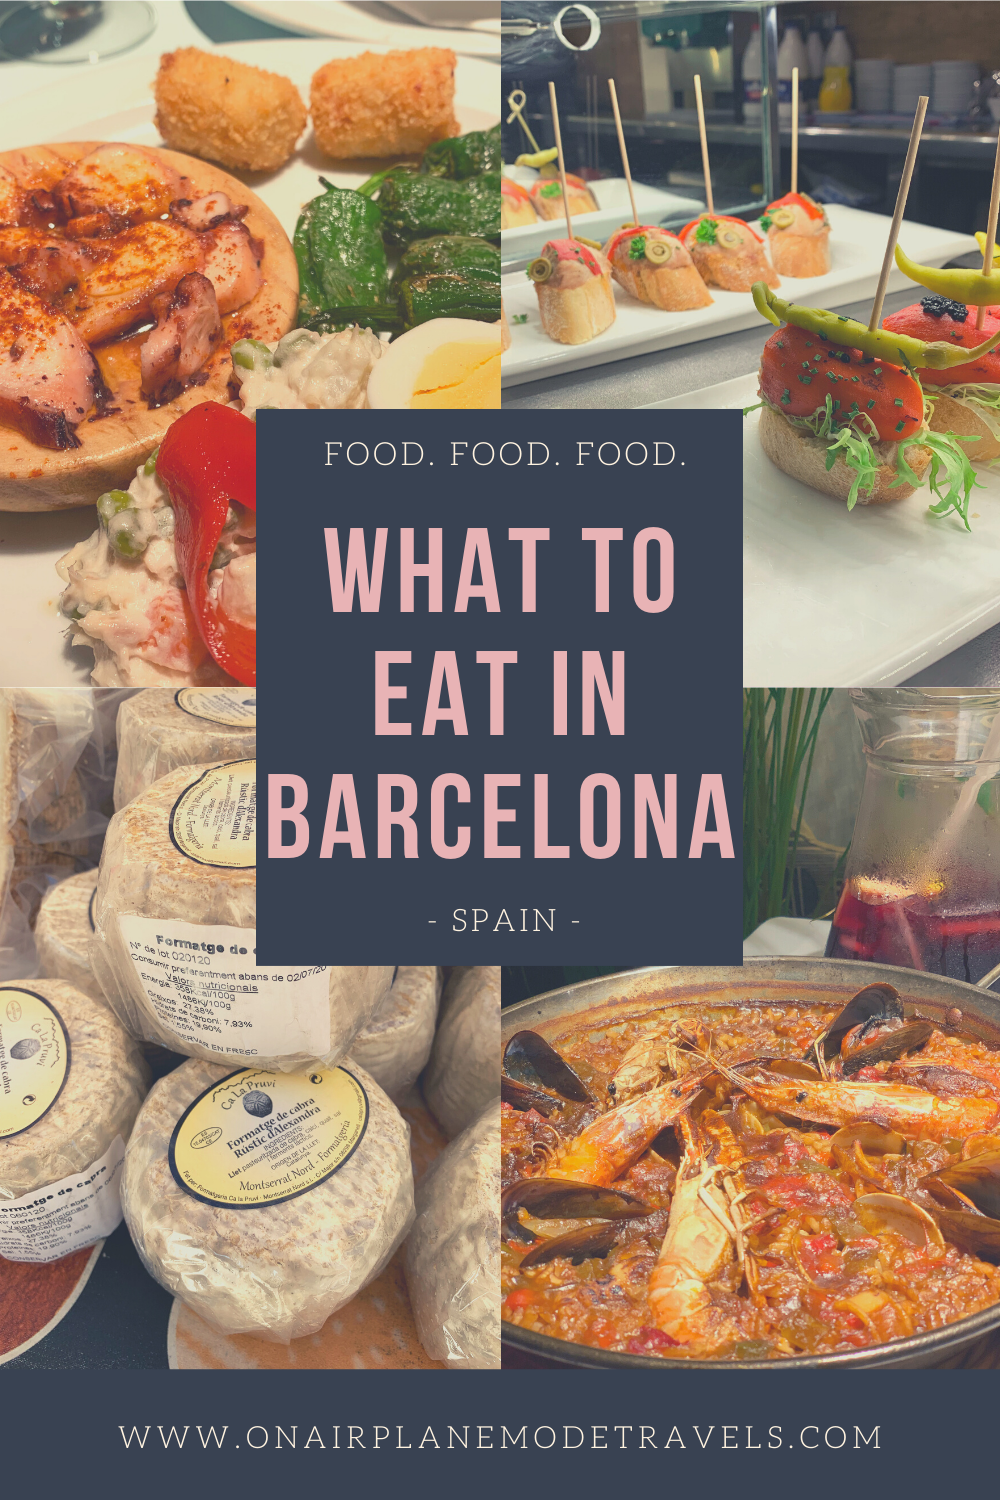 What to Eat in Barcelona | On Airplane Mode